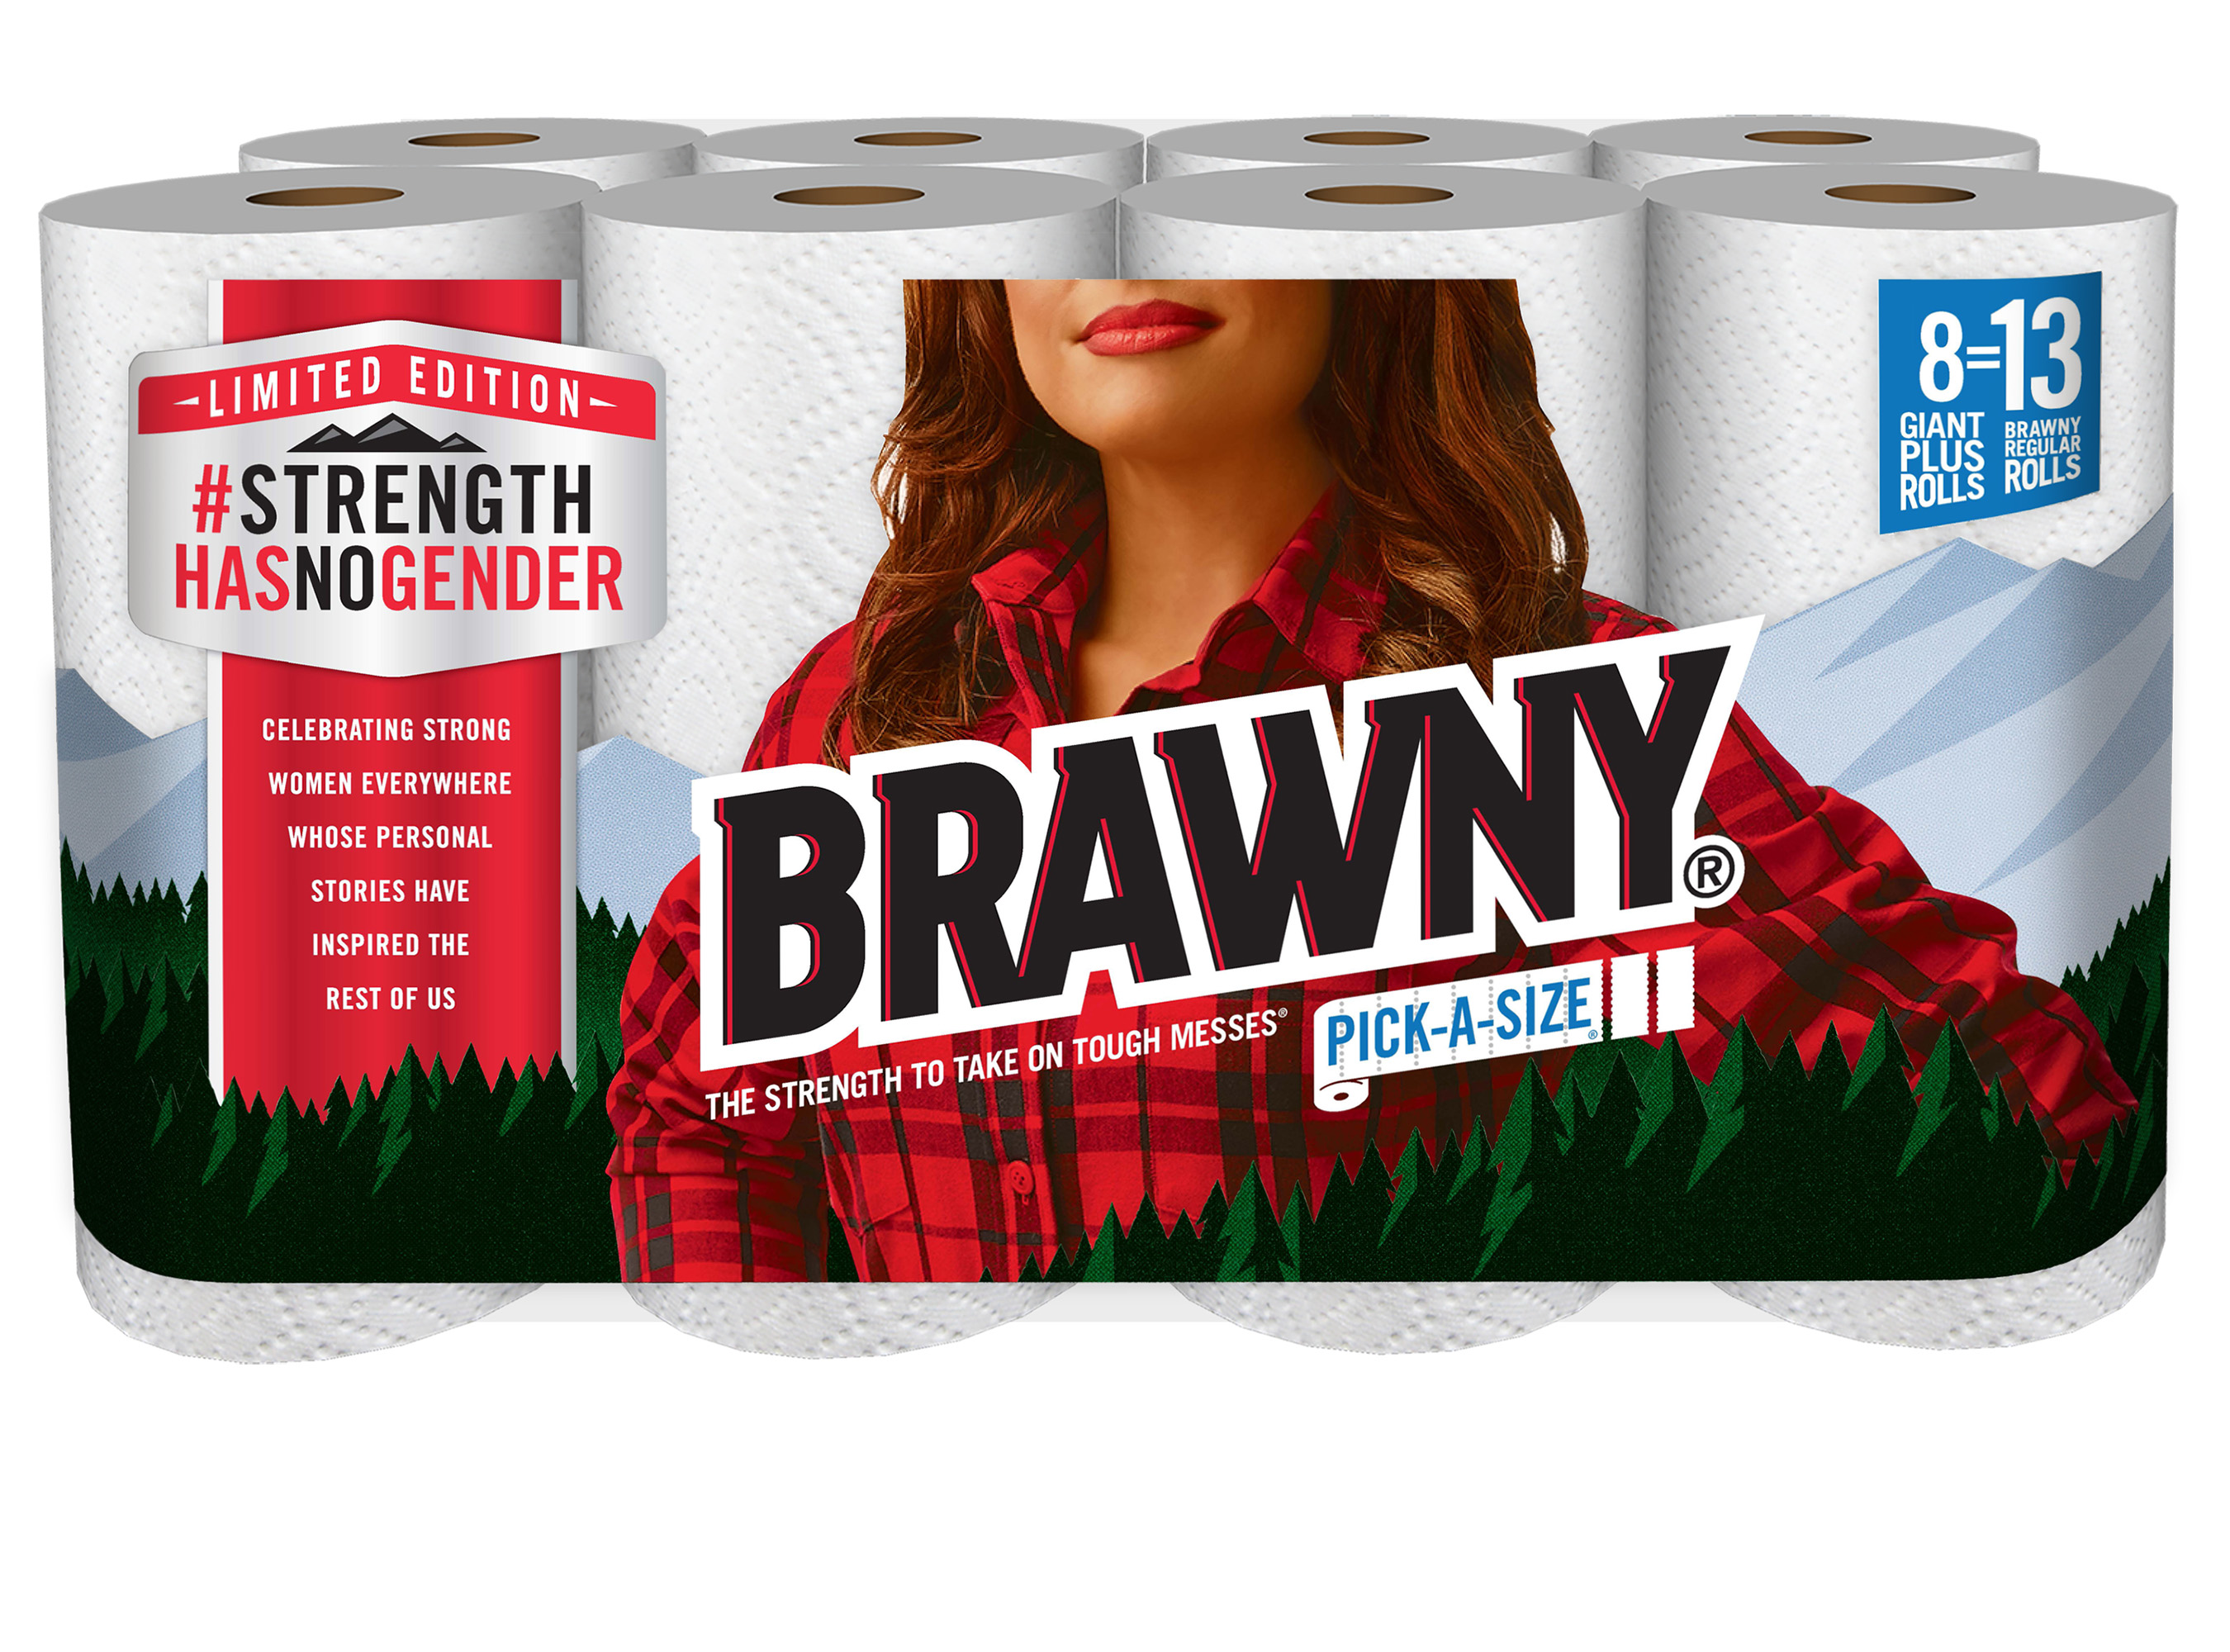 The limited-edition Brawny packaging.